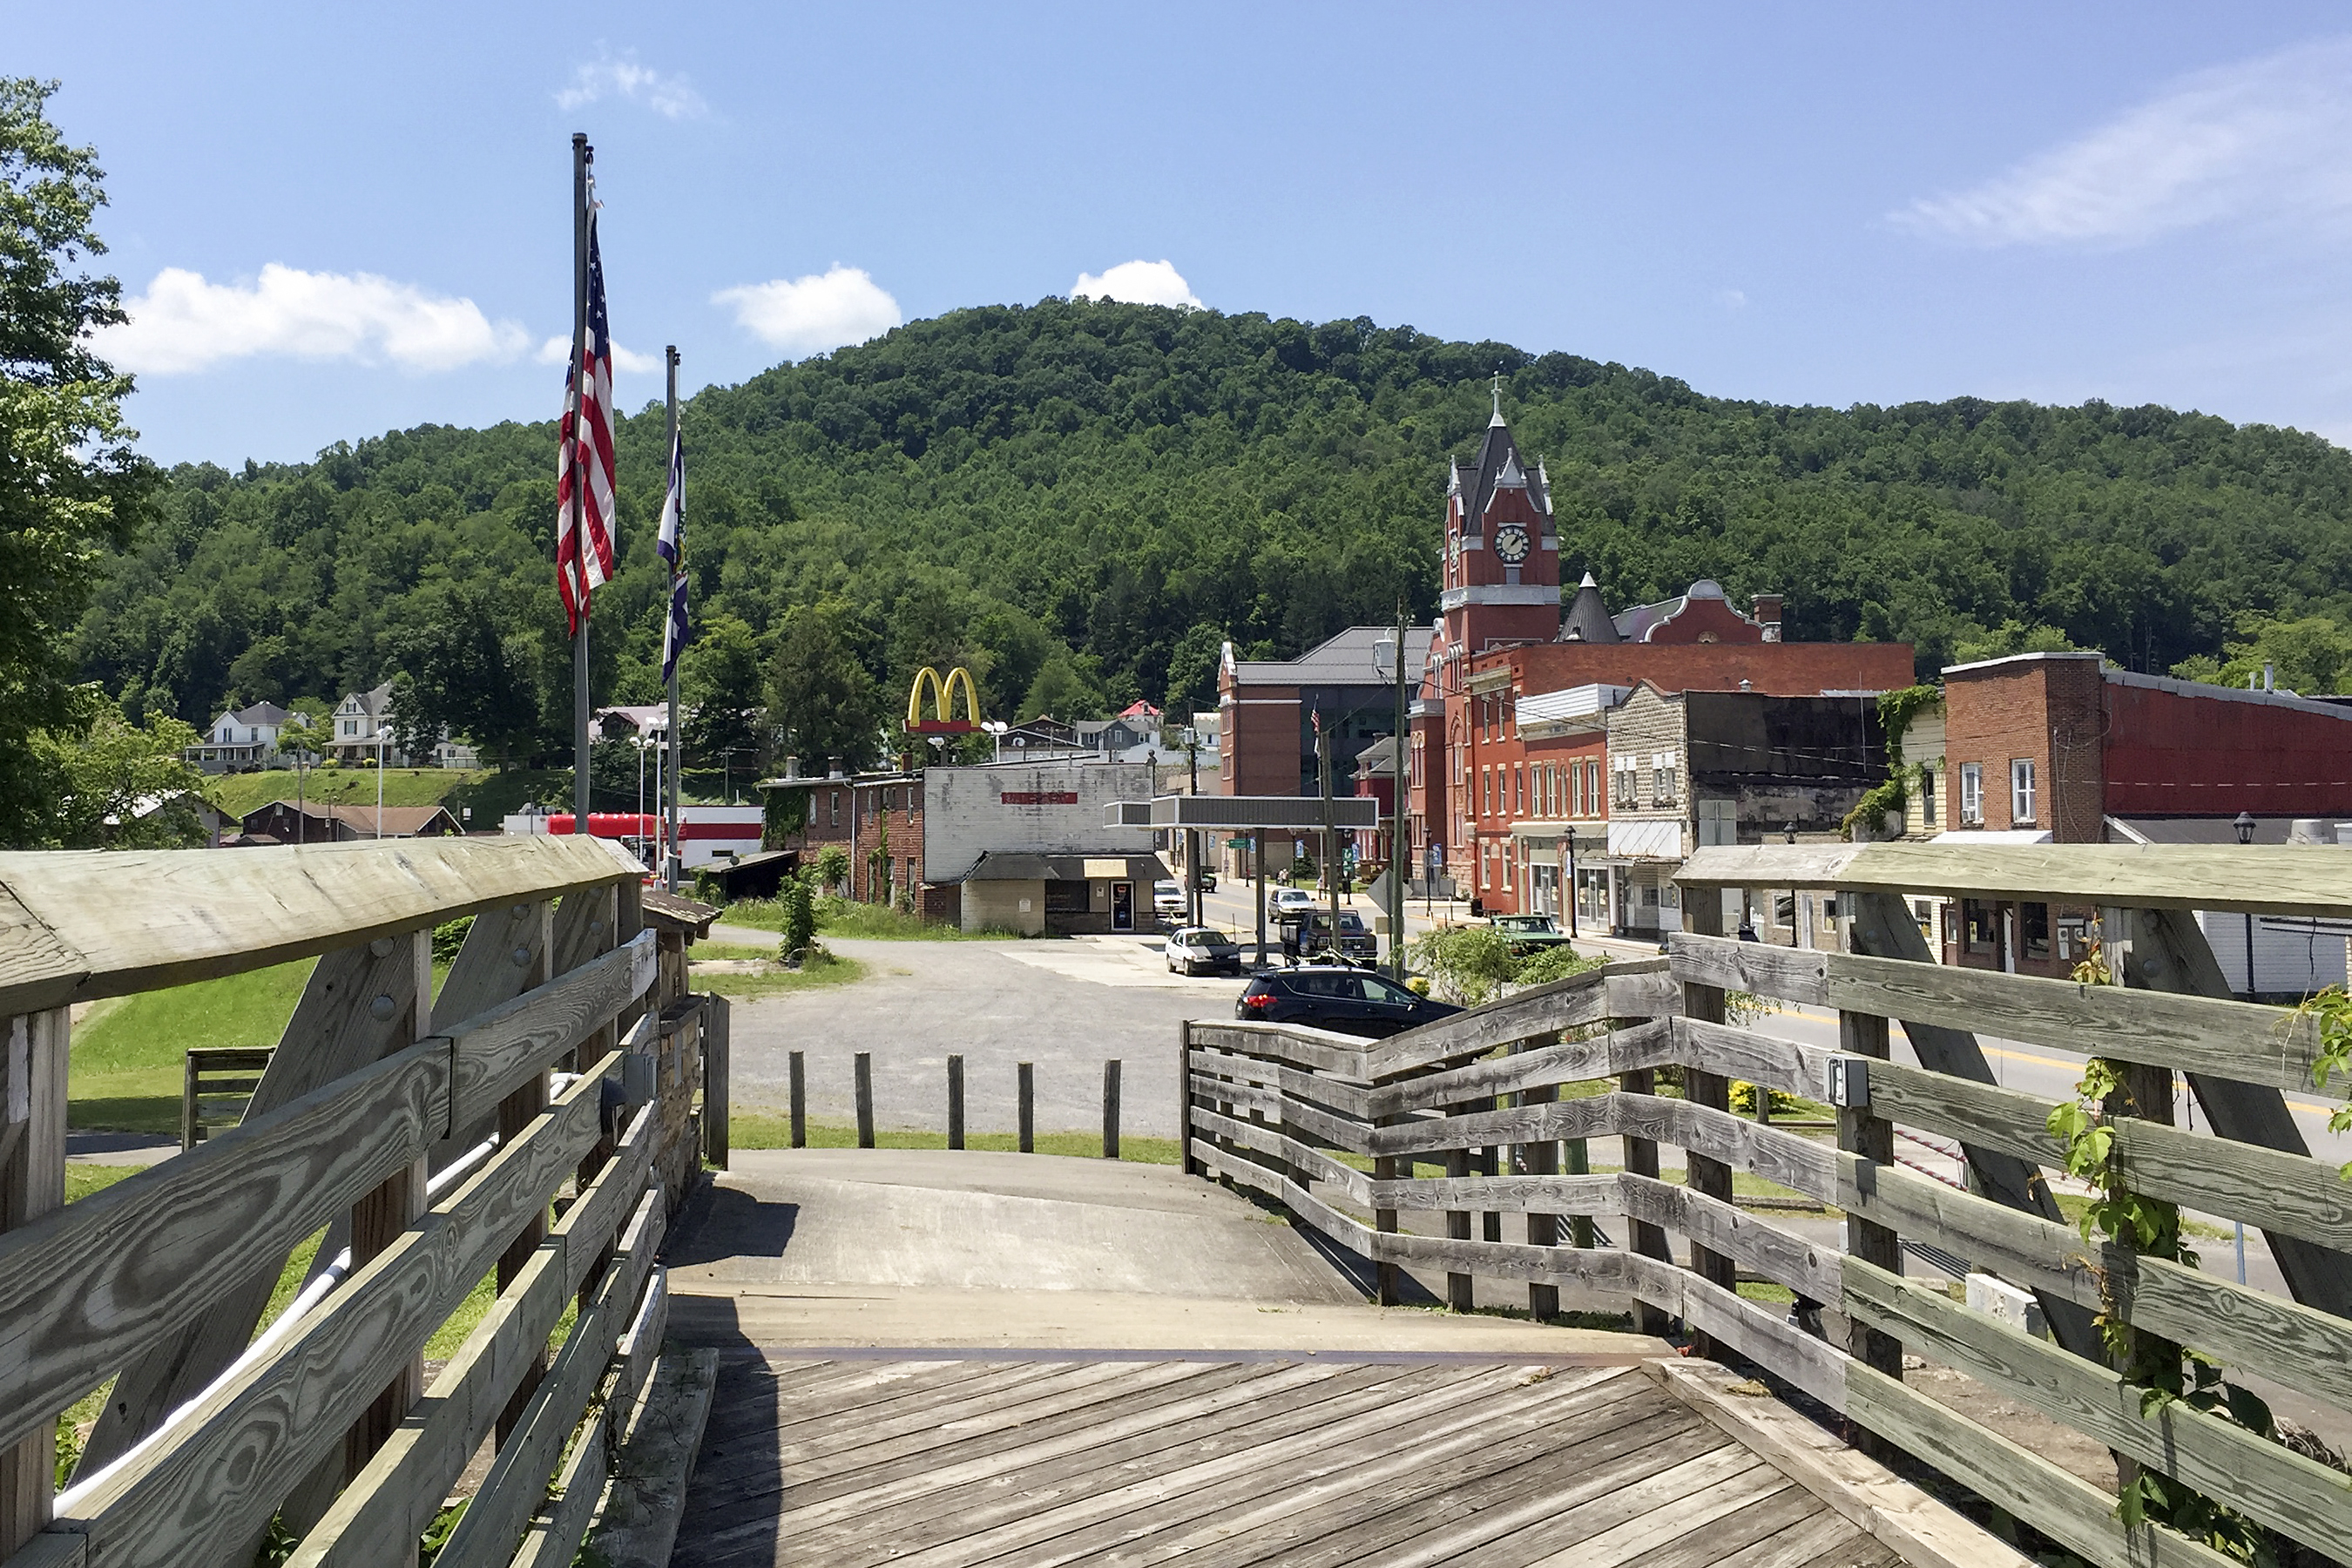 A small town at the foot of a mountain with a boardwalk in the foreground